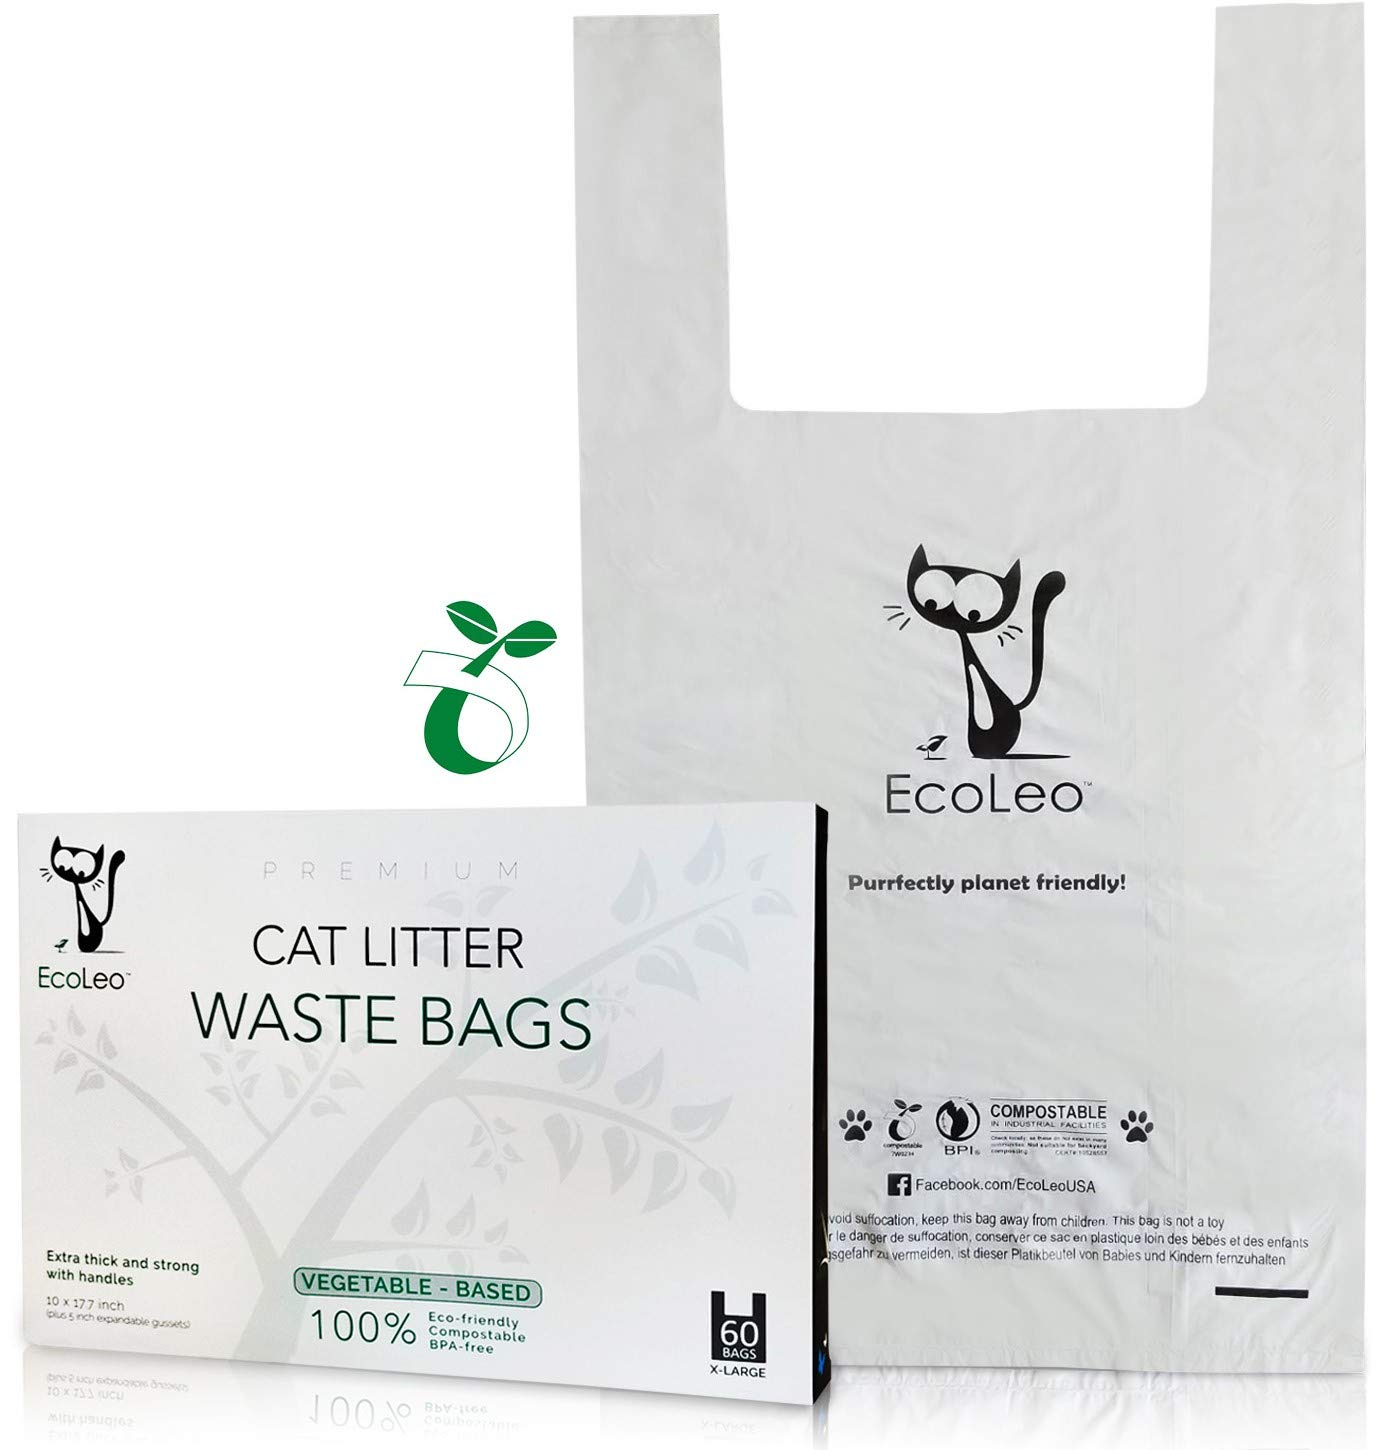 Ecoleo Cat Litter Waste Bags X Large Certified Compostable Biodegradable Thick Leak Proof Pet Dog Poop Bags With Easy Tie Handles 7 Inch